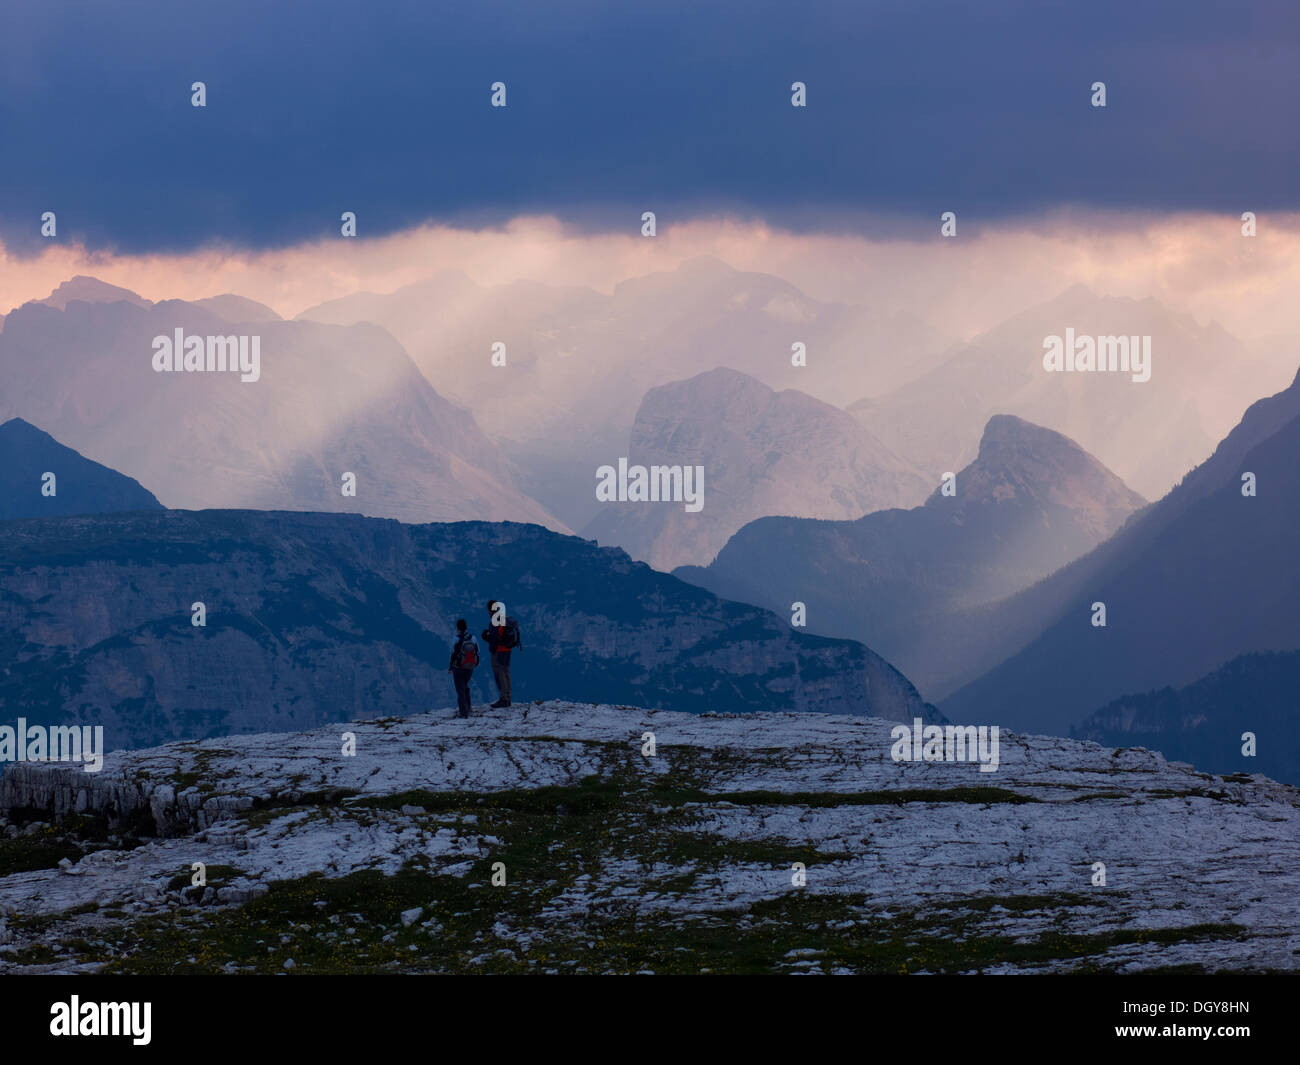 Hikers in the Dolomiti di Sesto National Park, Sexten Dolomites, Hochpustertal, High Puster Valley, South Tyrol, Italy, Europe - Stock Image